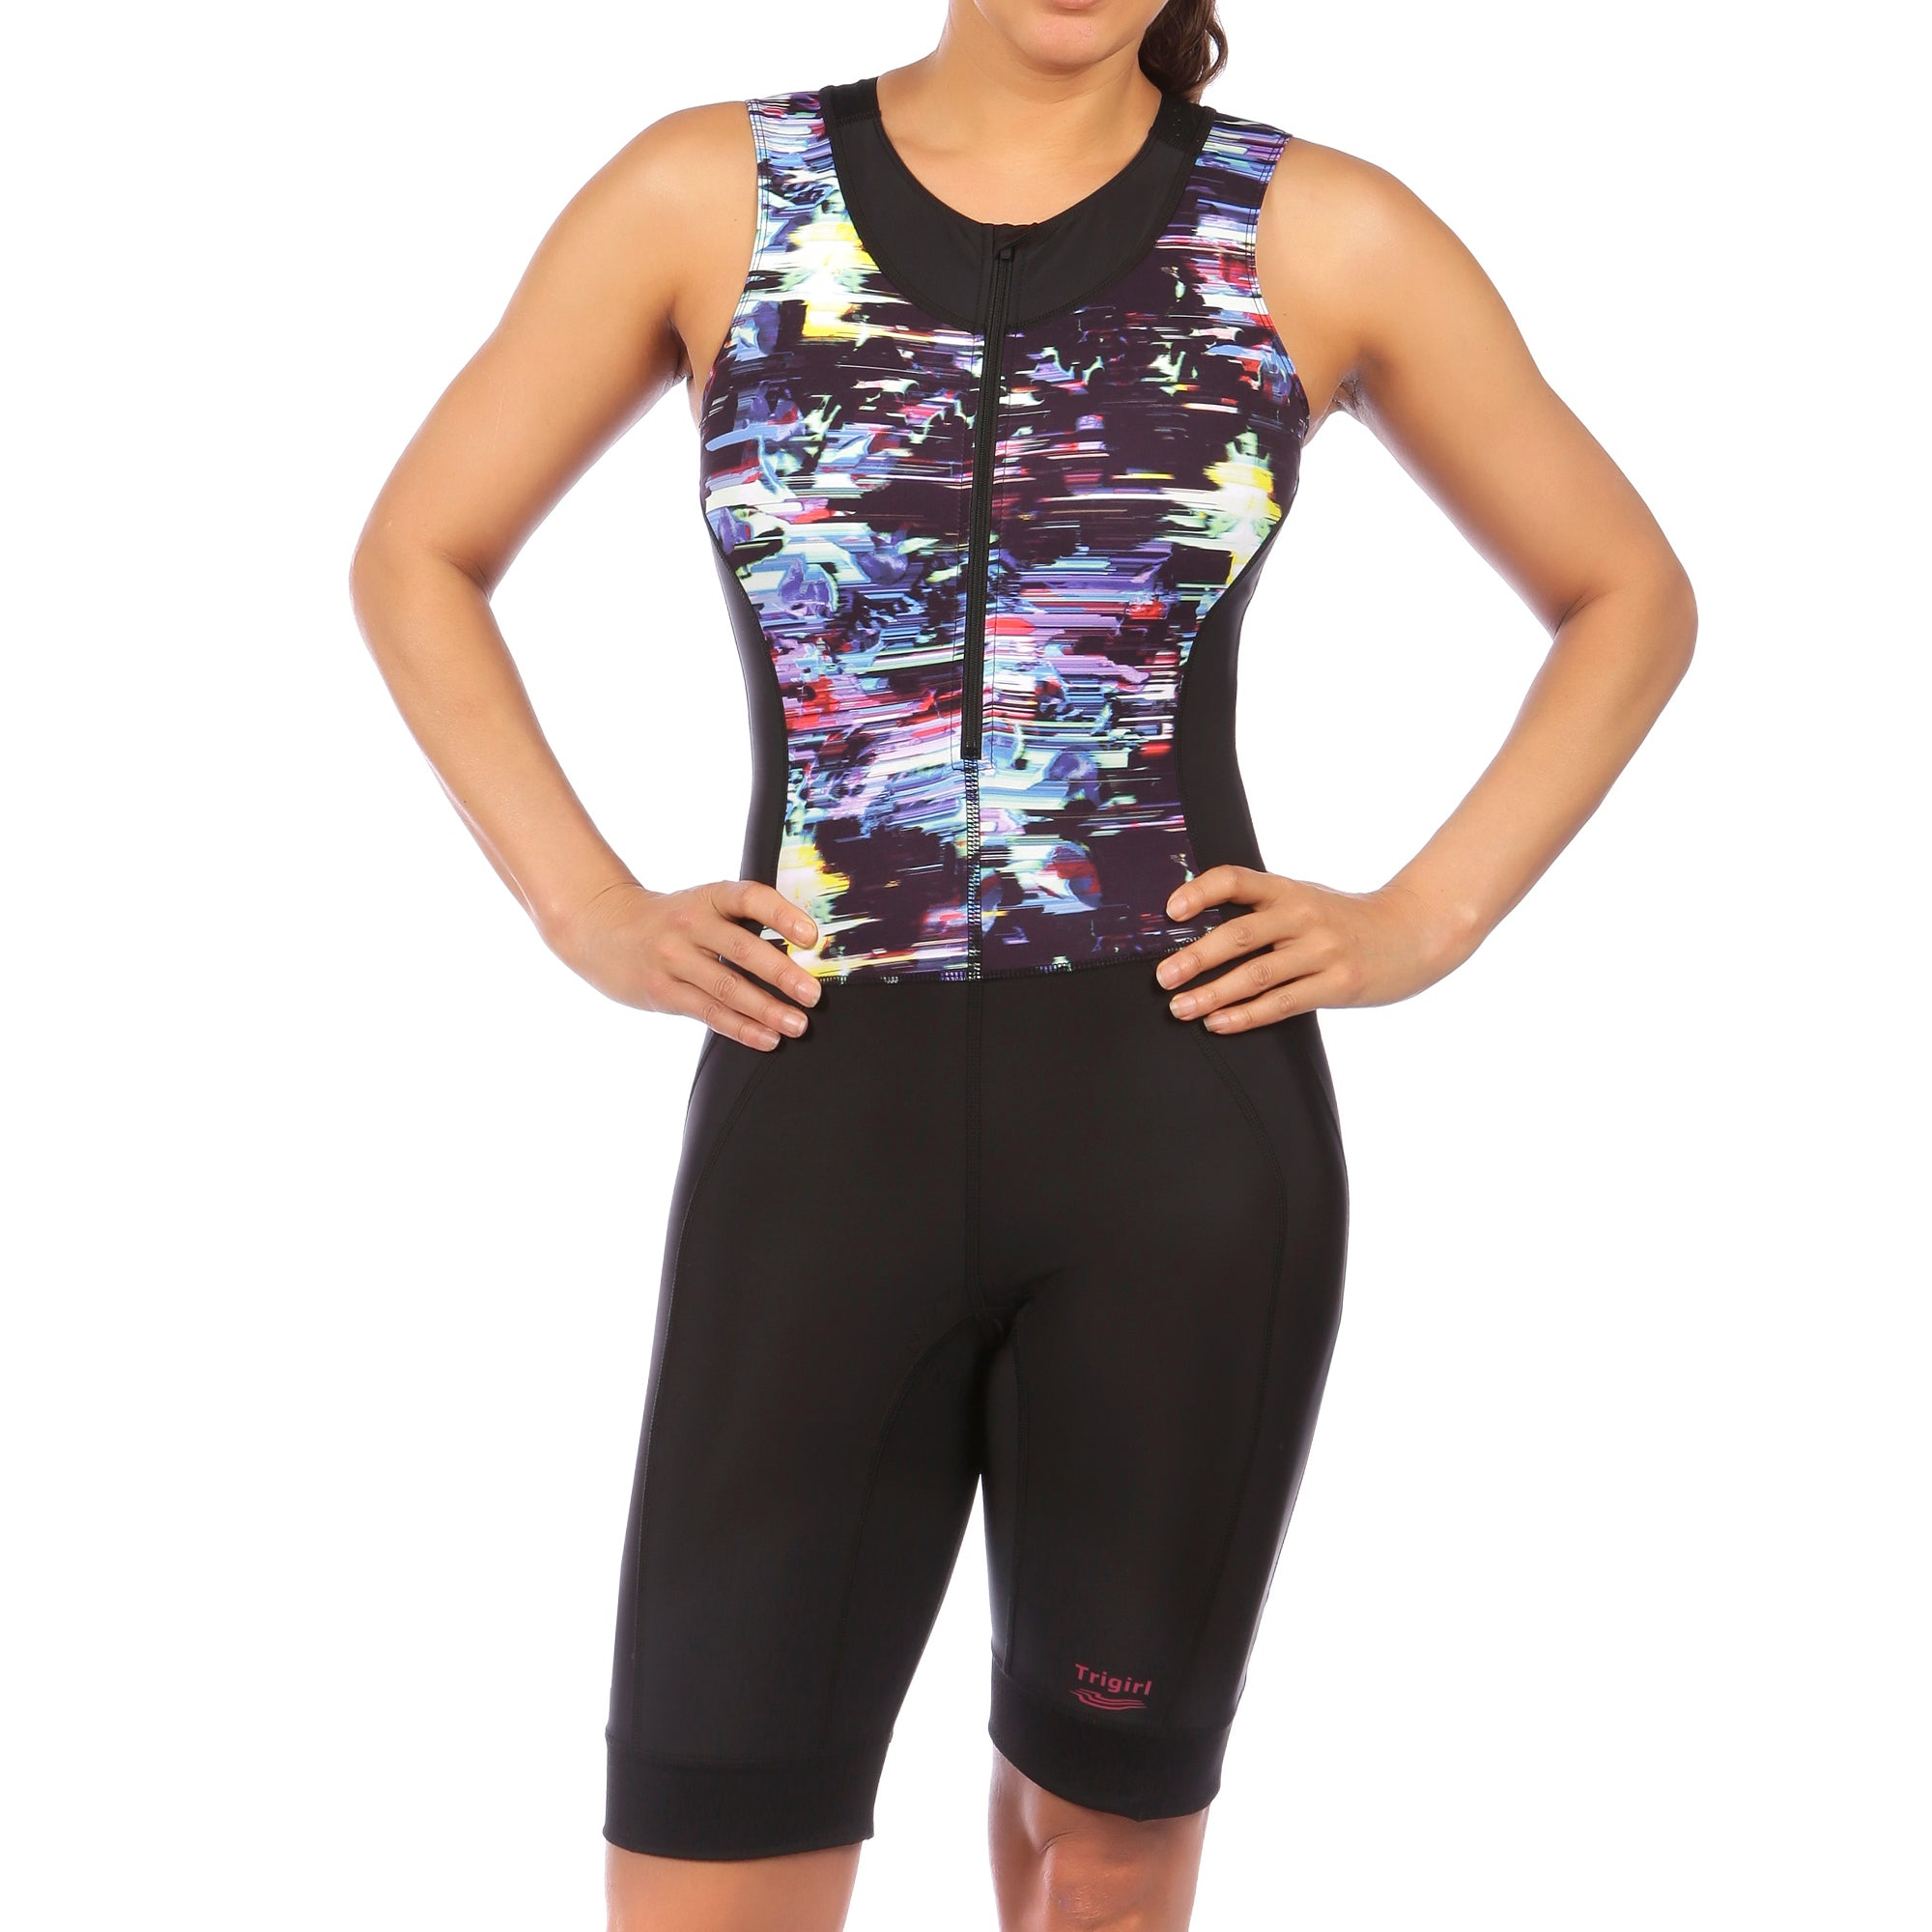 Ritzy Trisuit with Support Bra in Glitched Floral